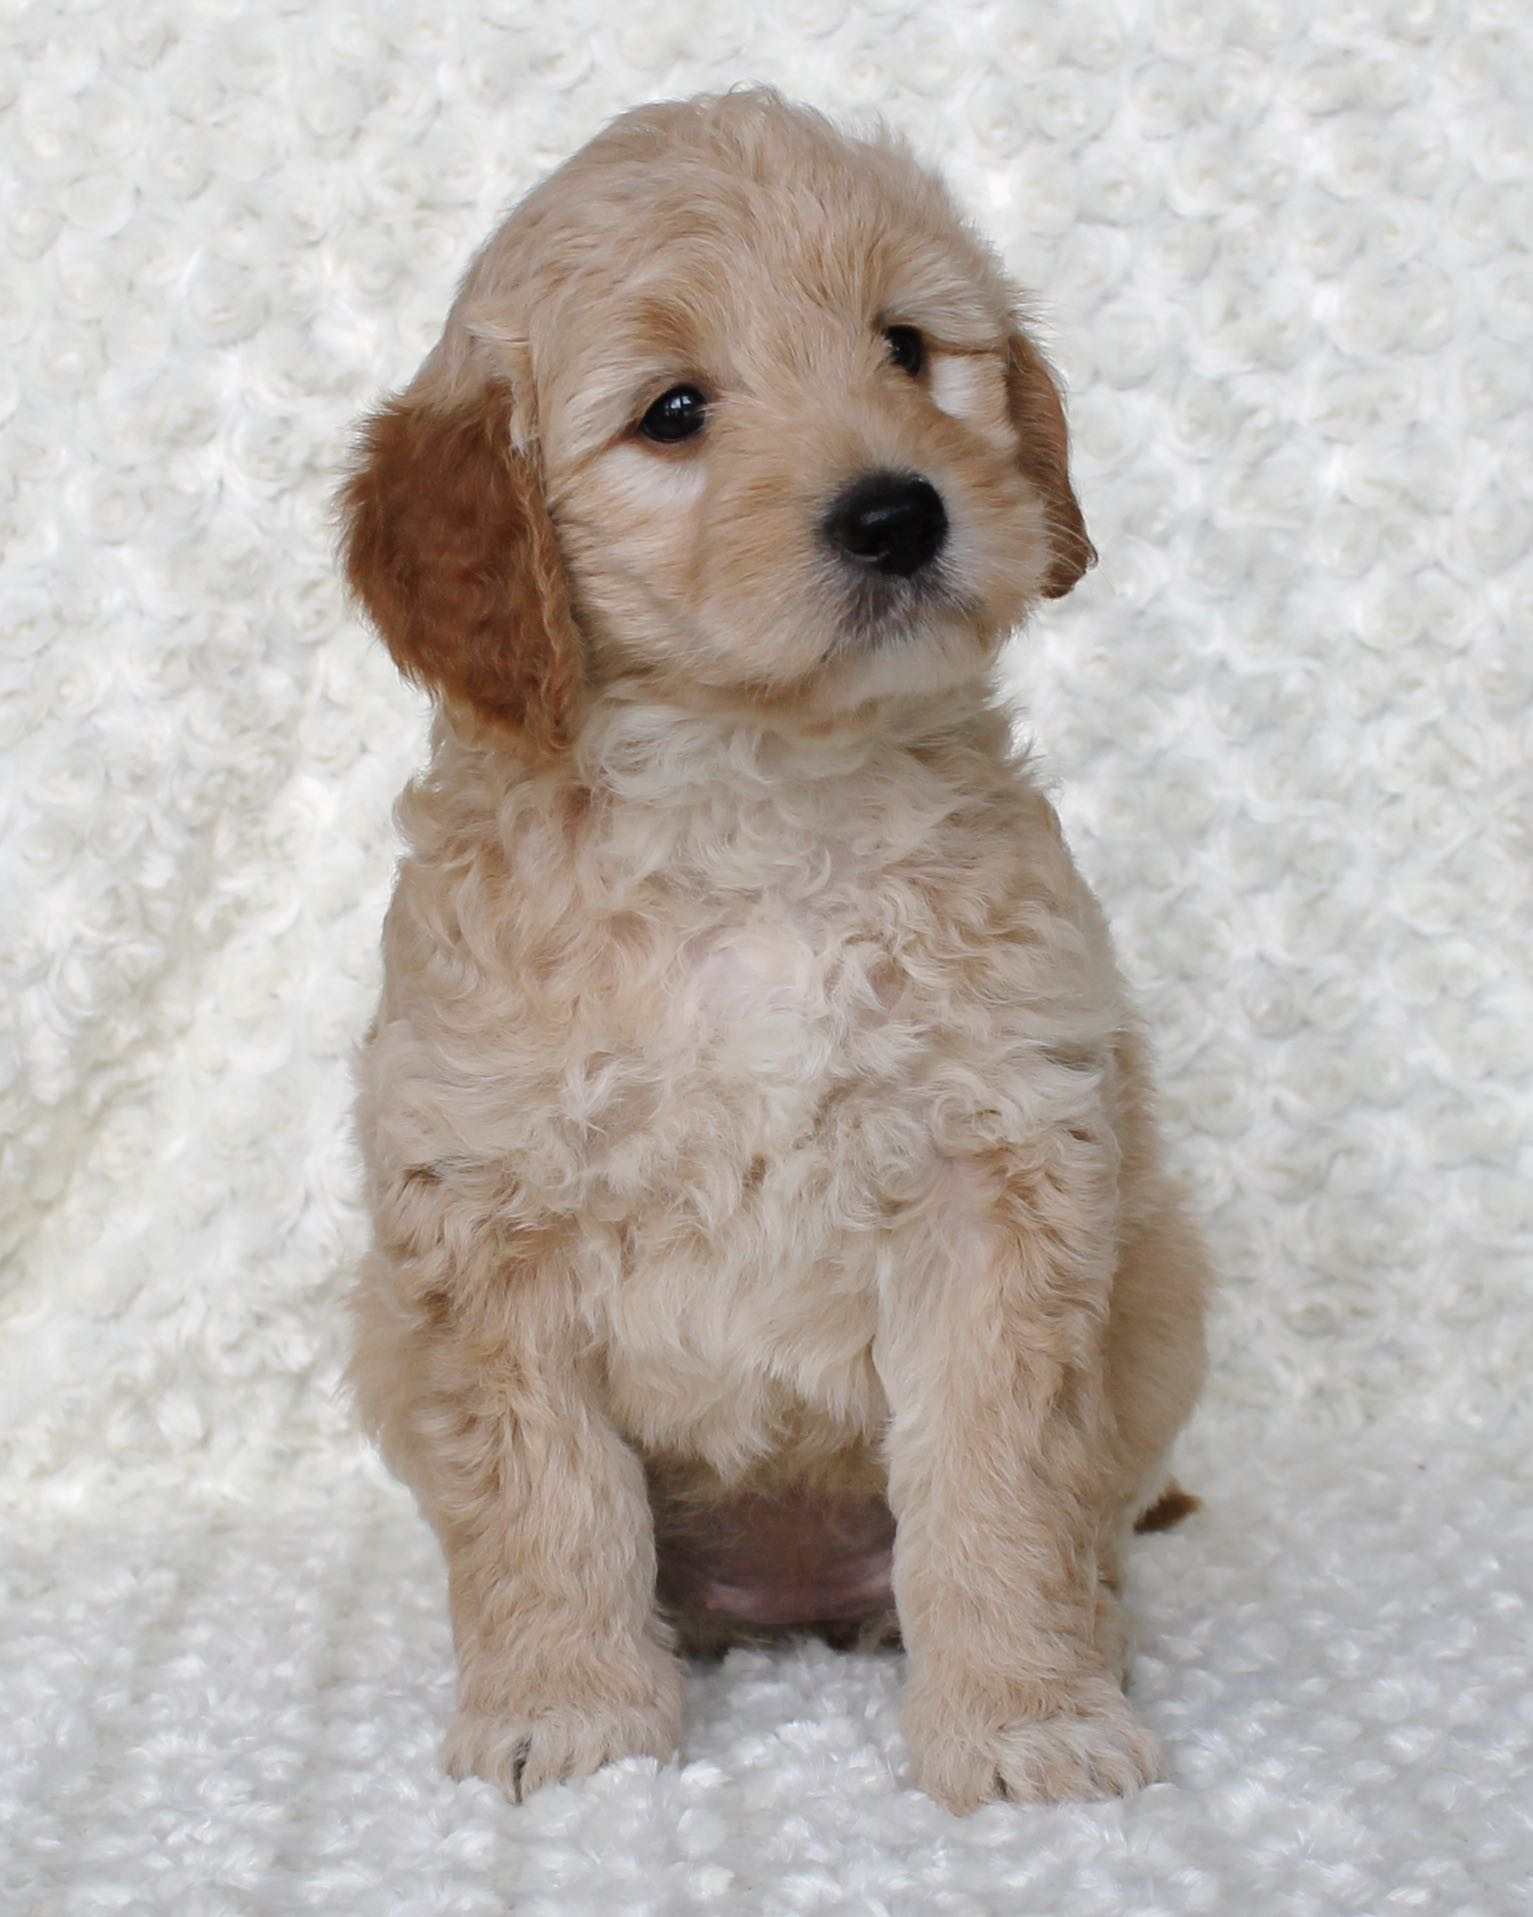 Abby, F1b Mini Goldendoodle at 6 weeks